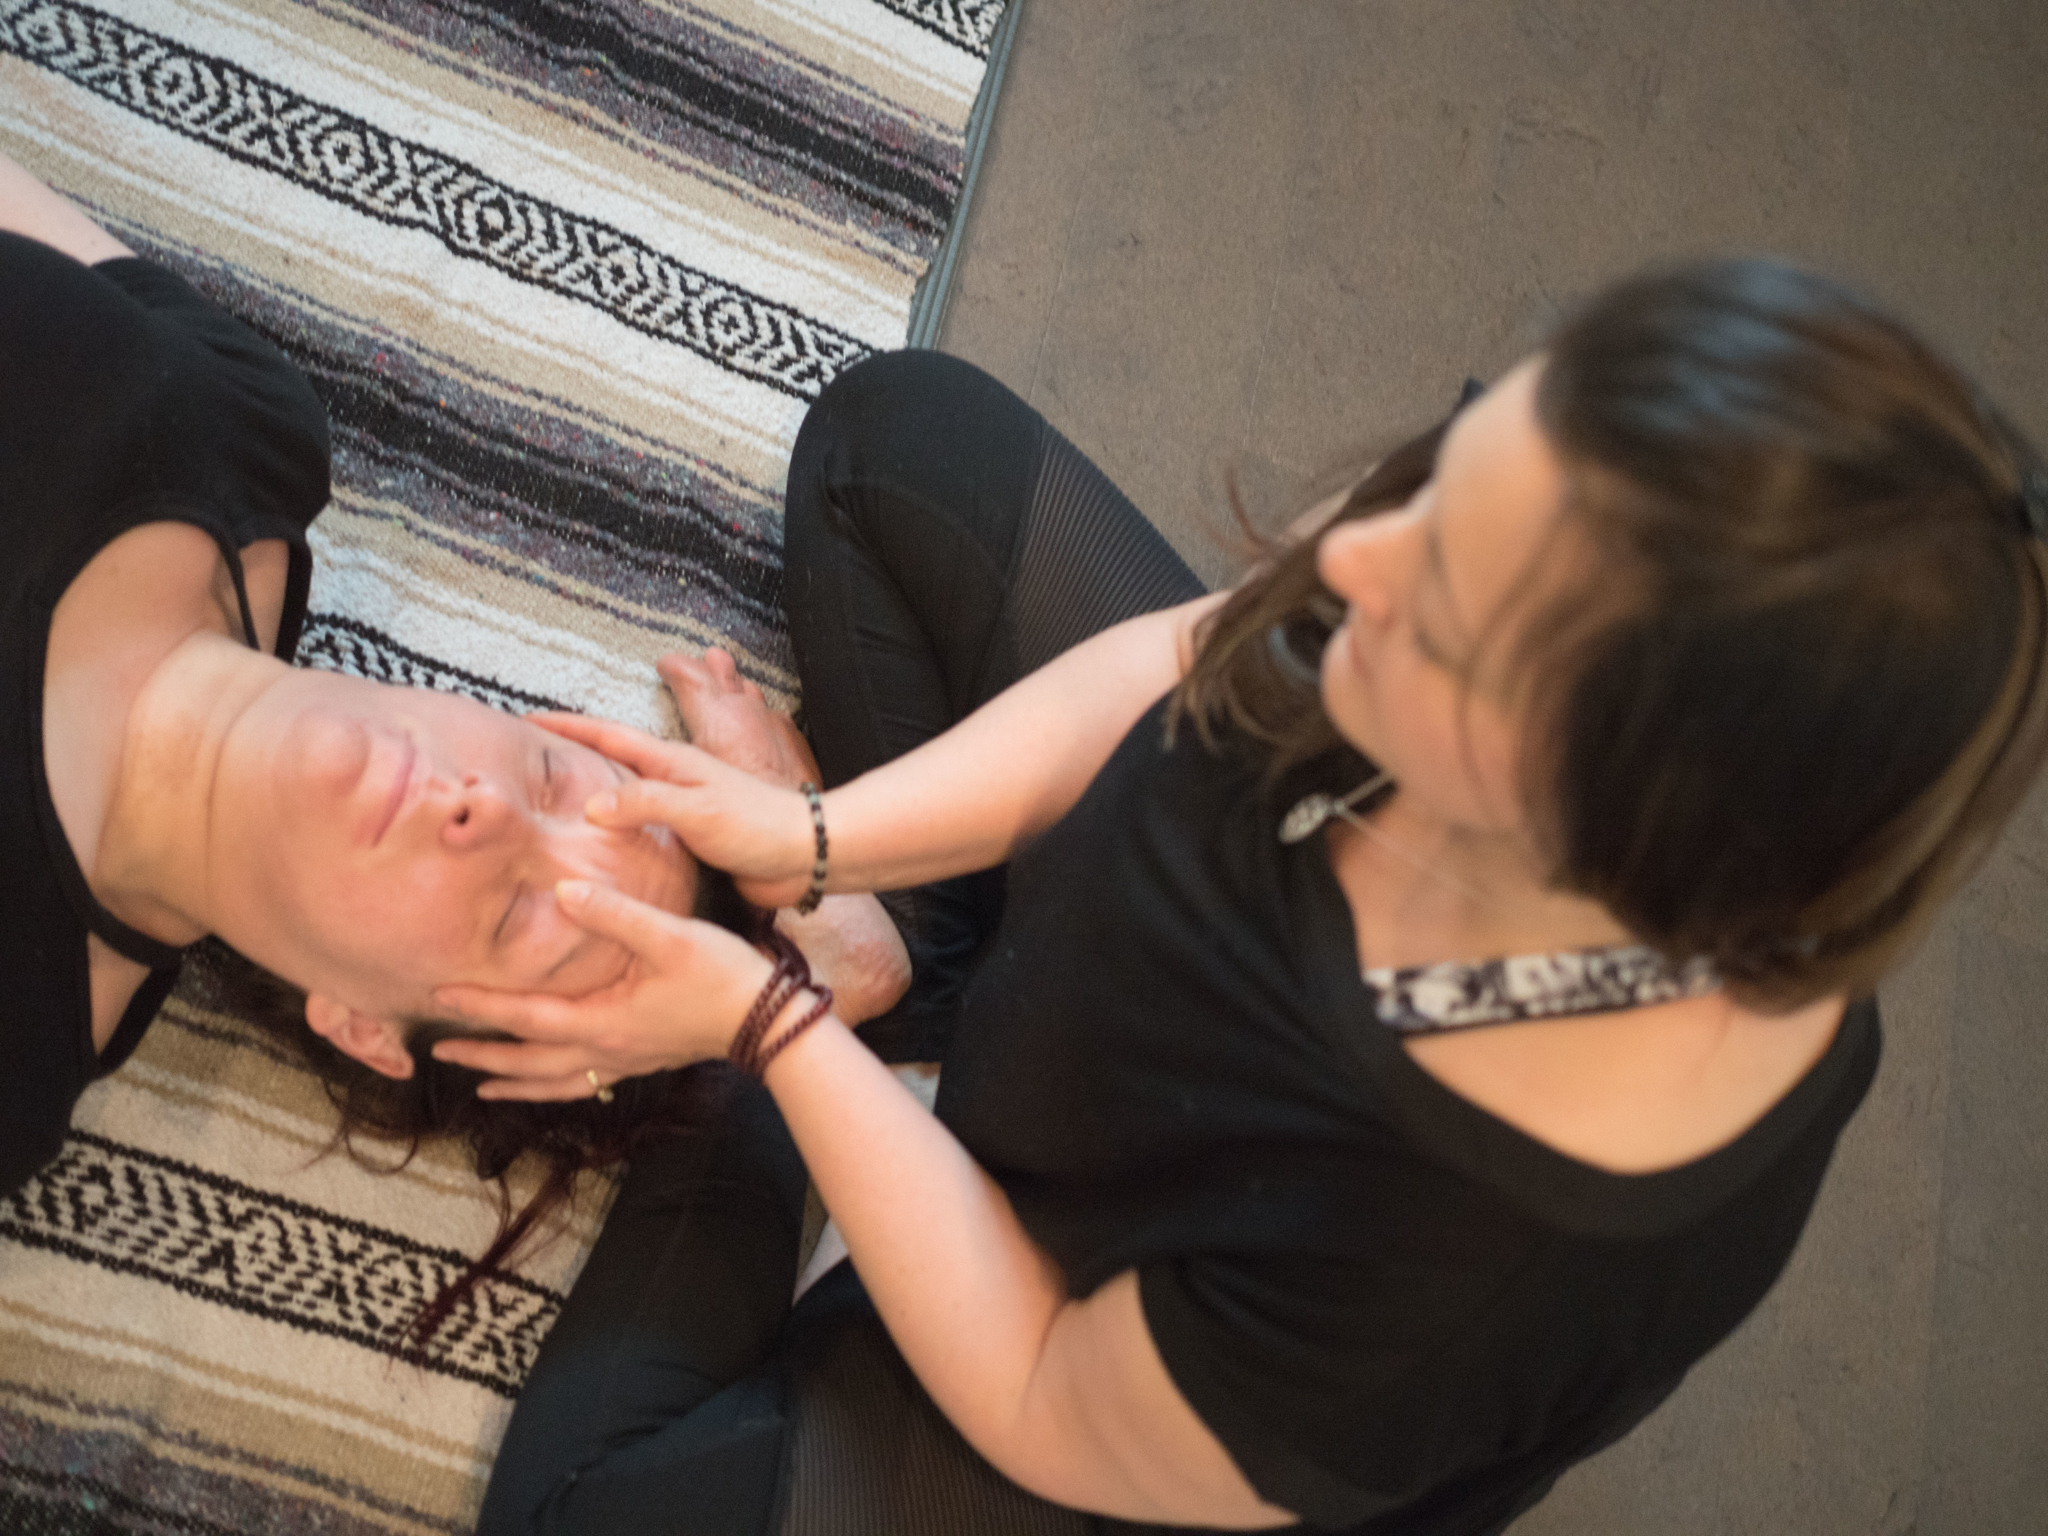 CranioSacral Therapy (CST) is a gentle, hands-on approach that releases tensions deep in the body to Life of Wellness Centre Airdrie (403)473-8679